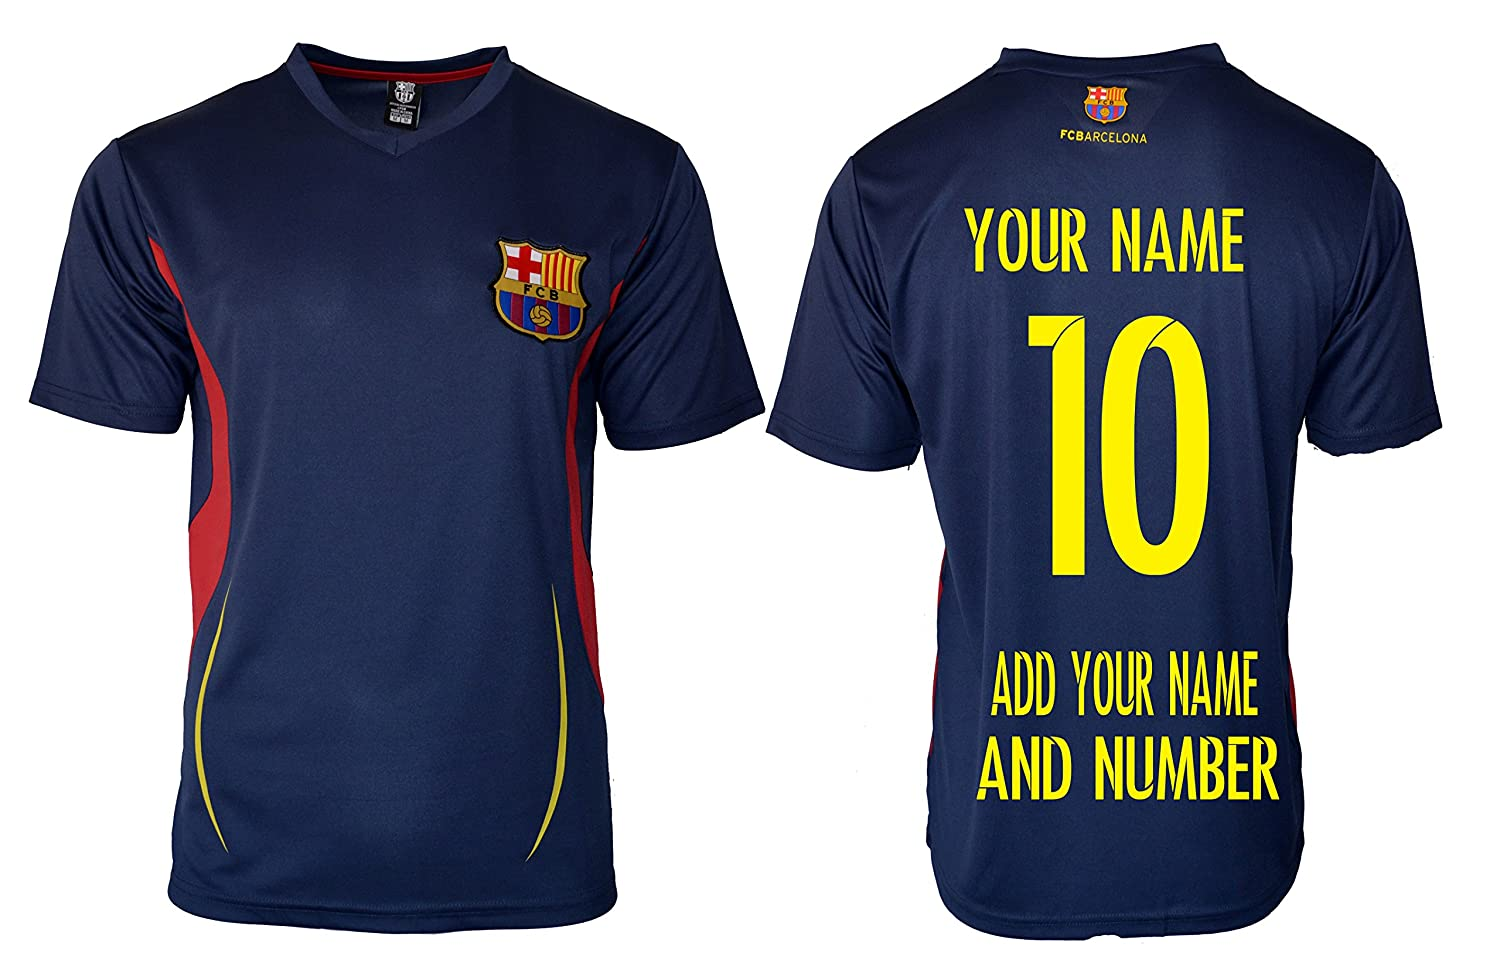 on sale 80844 9a0cd FC Barcelona Soccer Jersey Men's Adult Training Performance ...